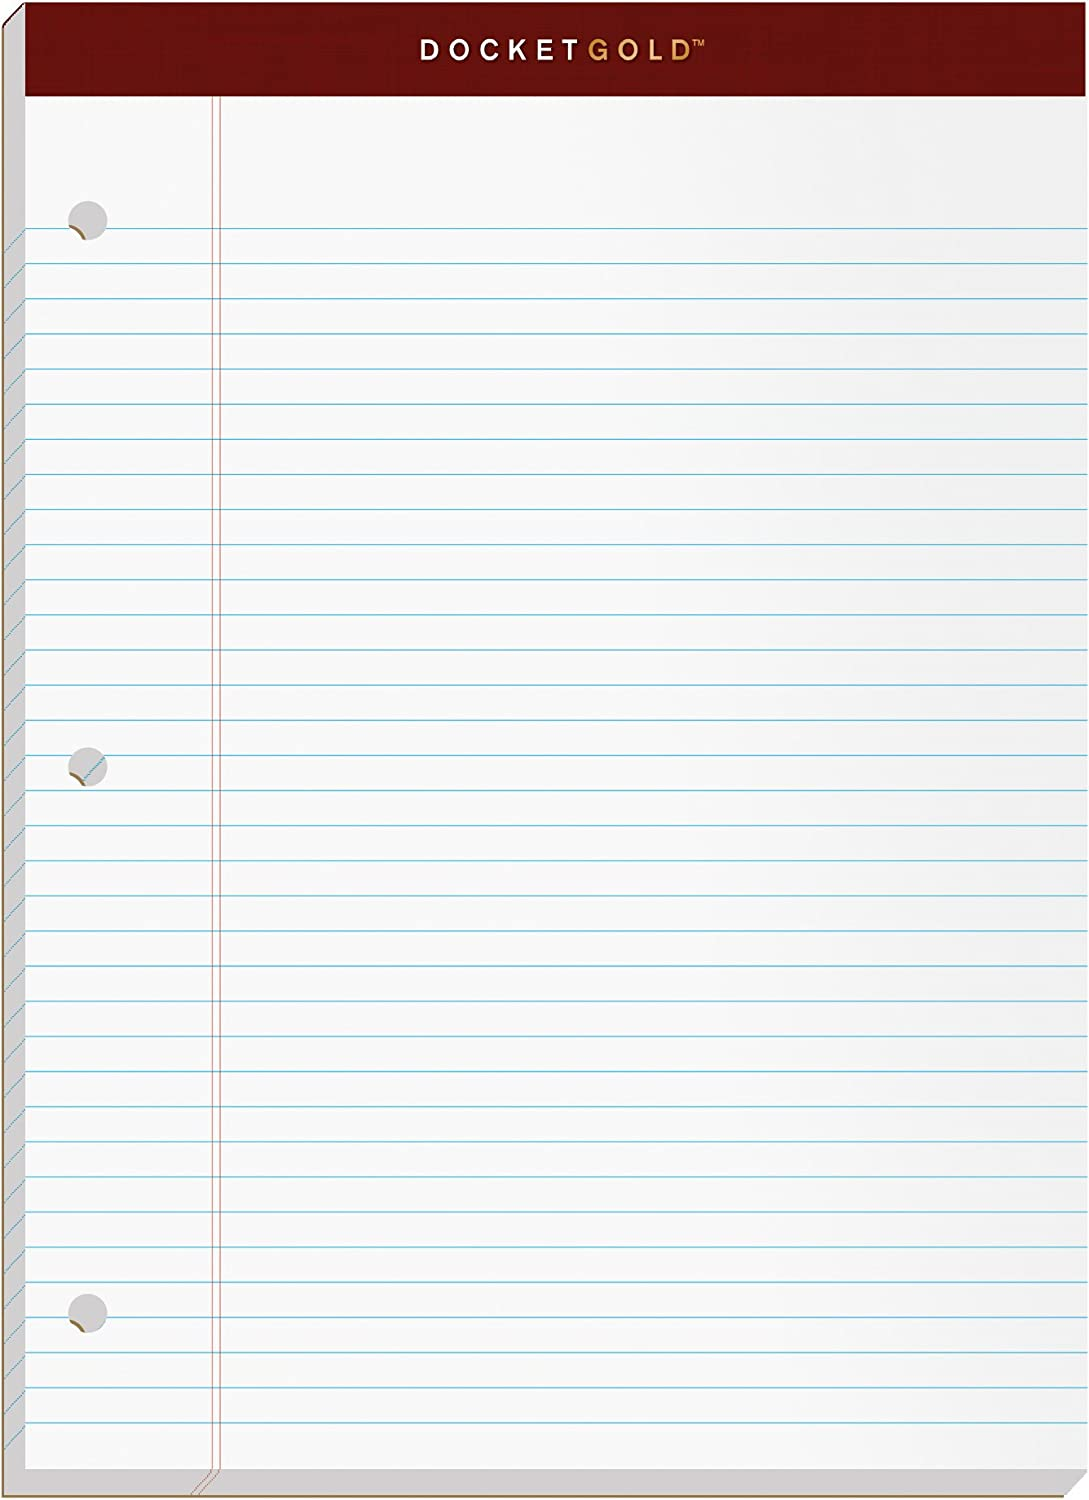 """TOPS Docket Gold Writing Pads, 8-1/2"""" x 11-3/4"""", Narrow Rule, 3-Hole Punched, White Paper, 100 Sheets, 2 Pack (99706)"""